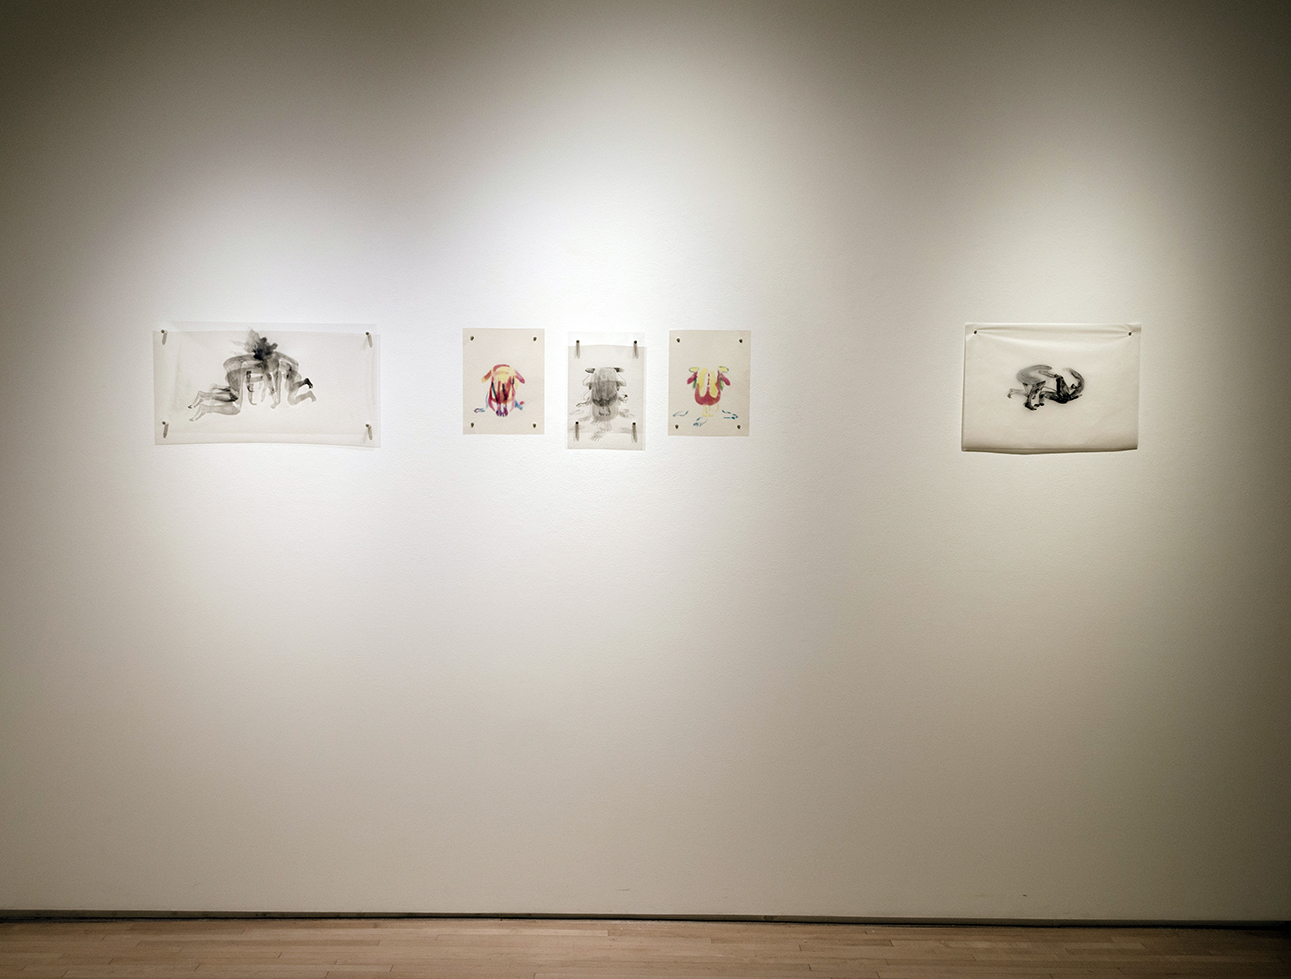 Toner drawings on film and The Fight_install